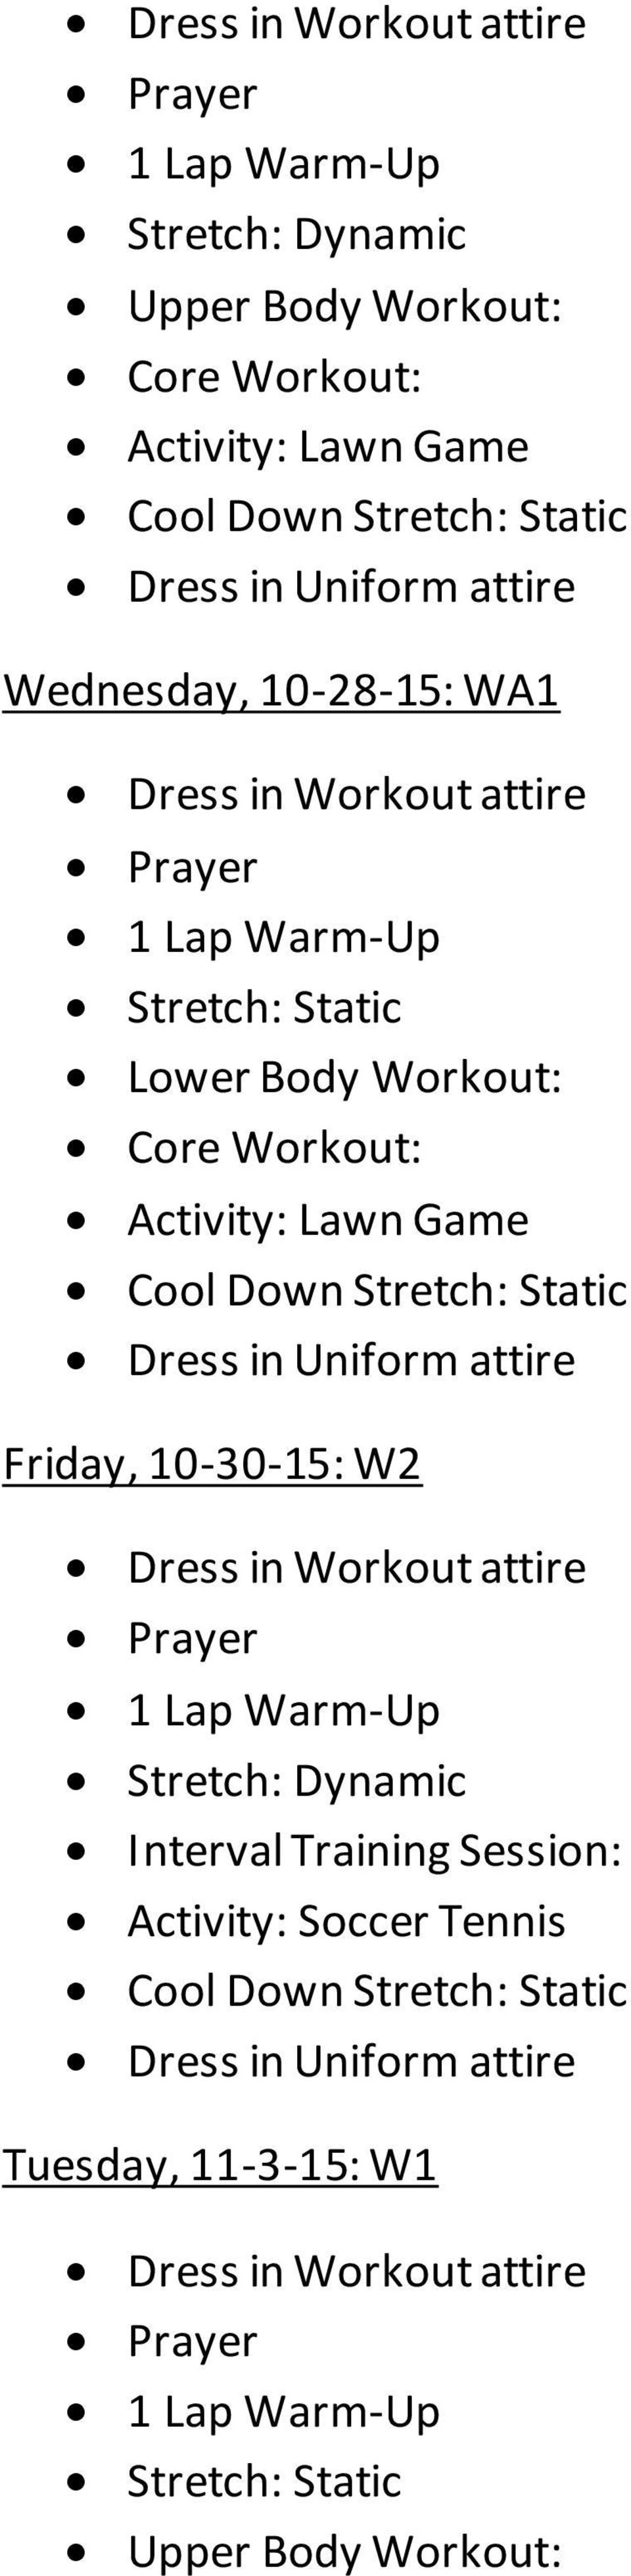 Friday, 10-30-15: W2 Interval Training